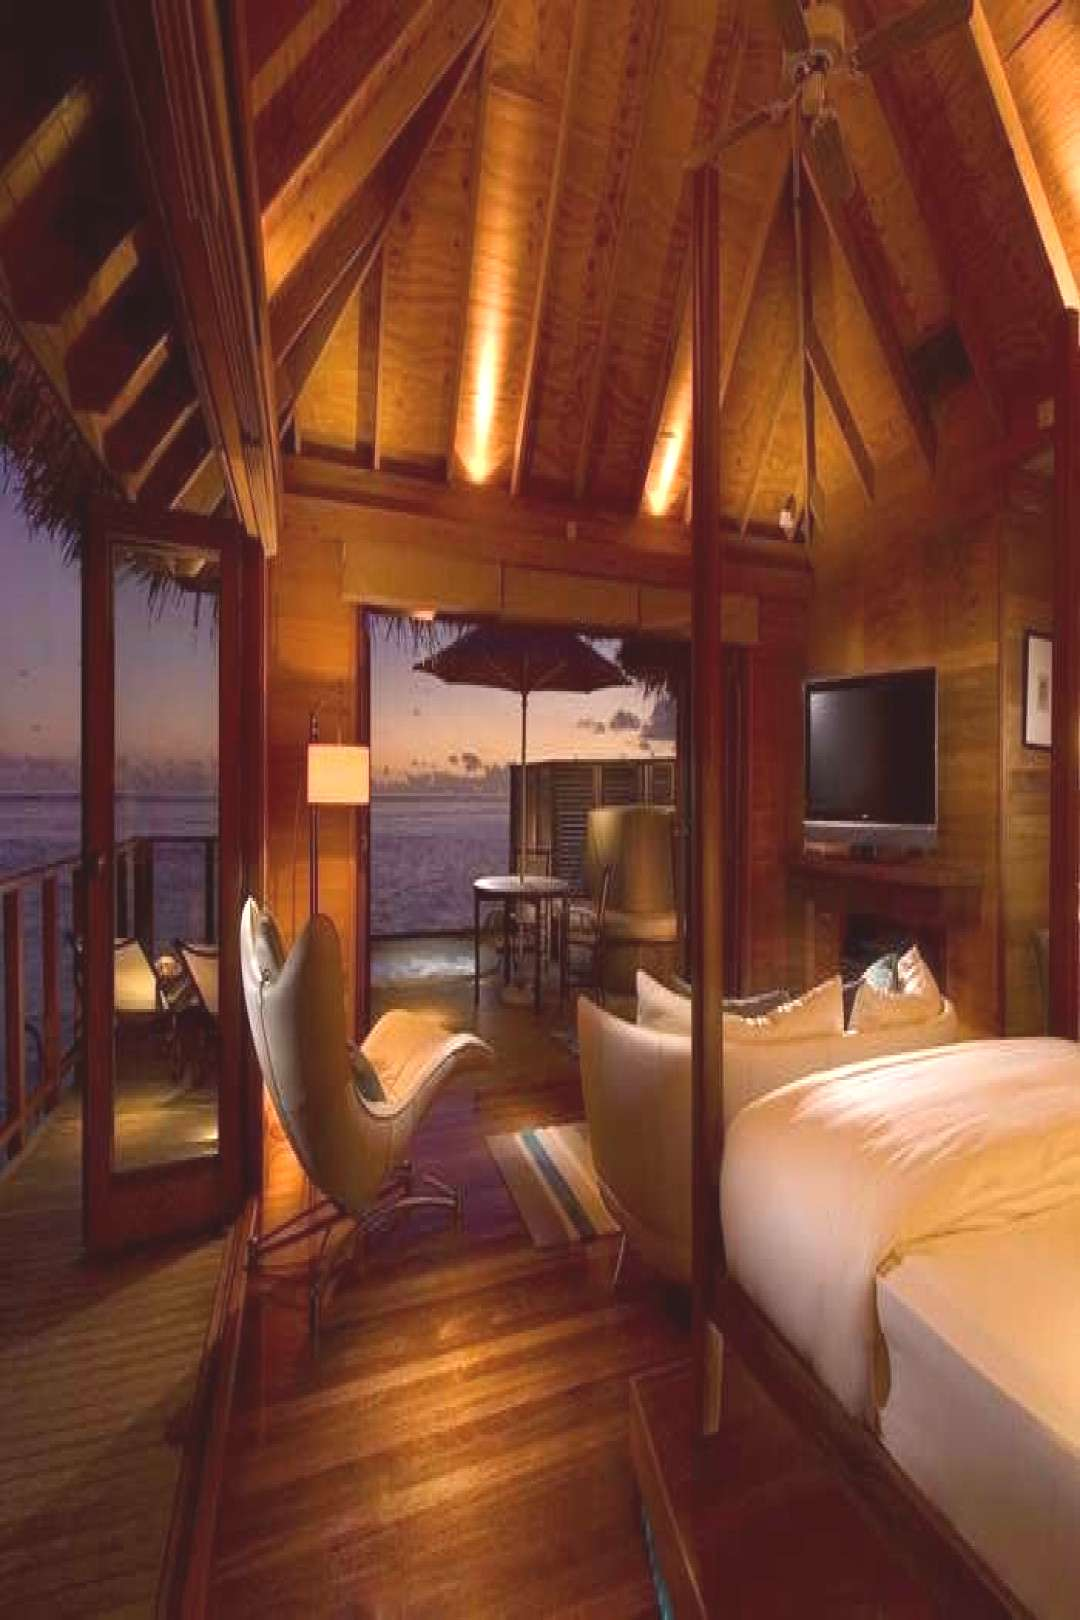 Best Overwater Bungalows in the Maldives#bungalows